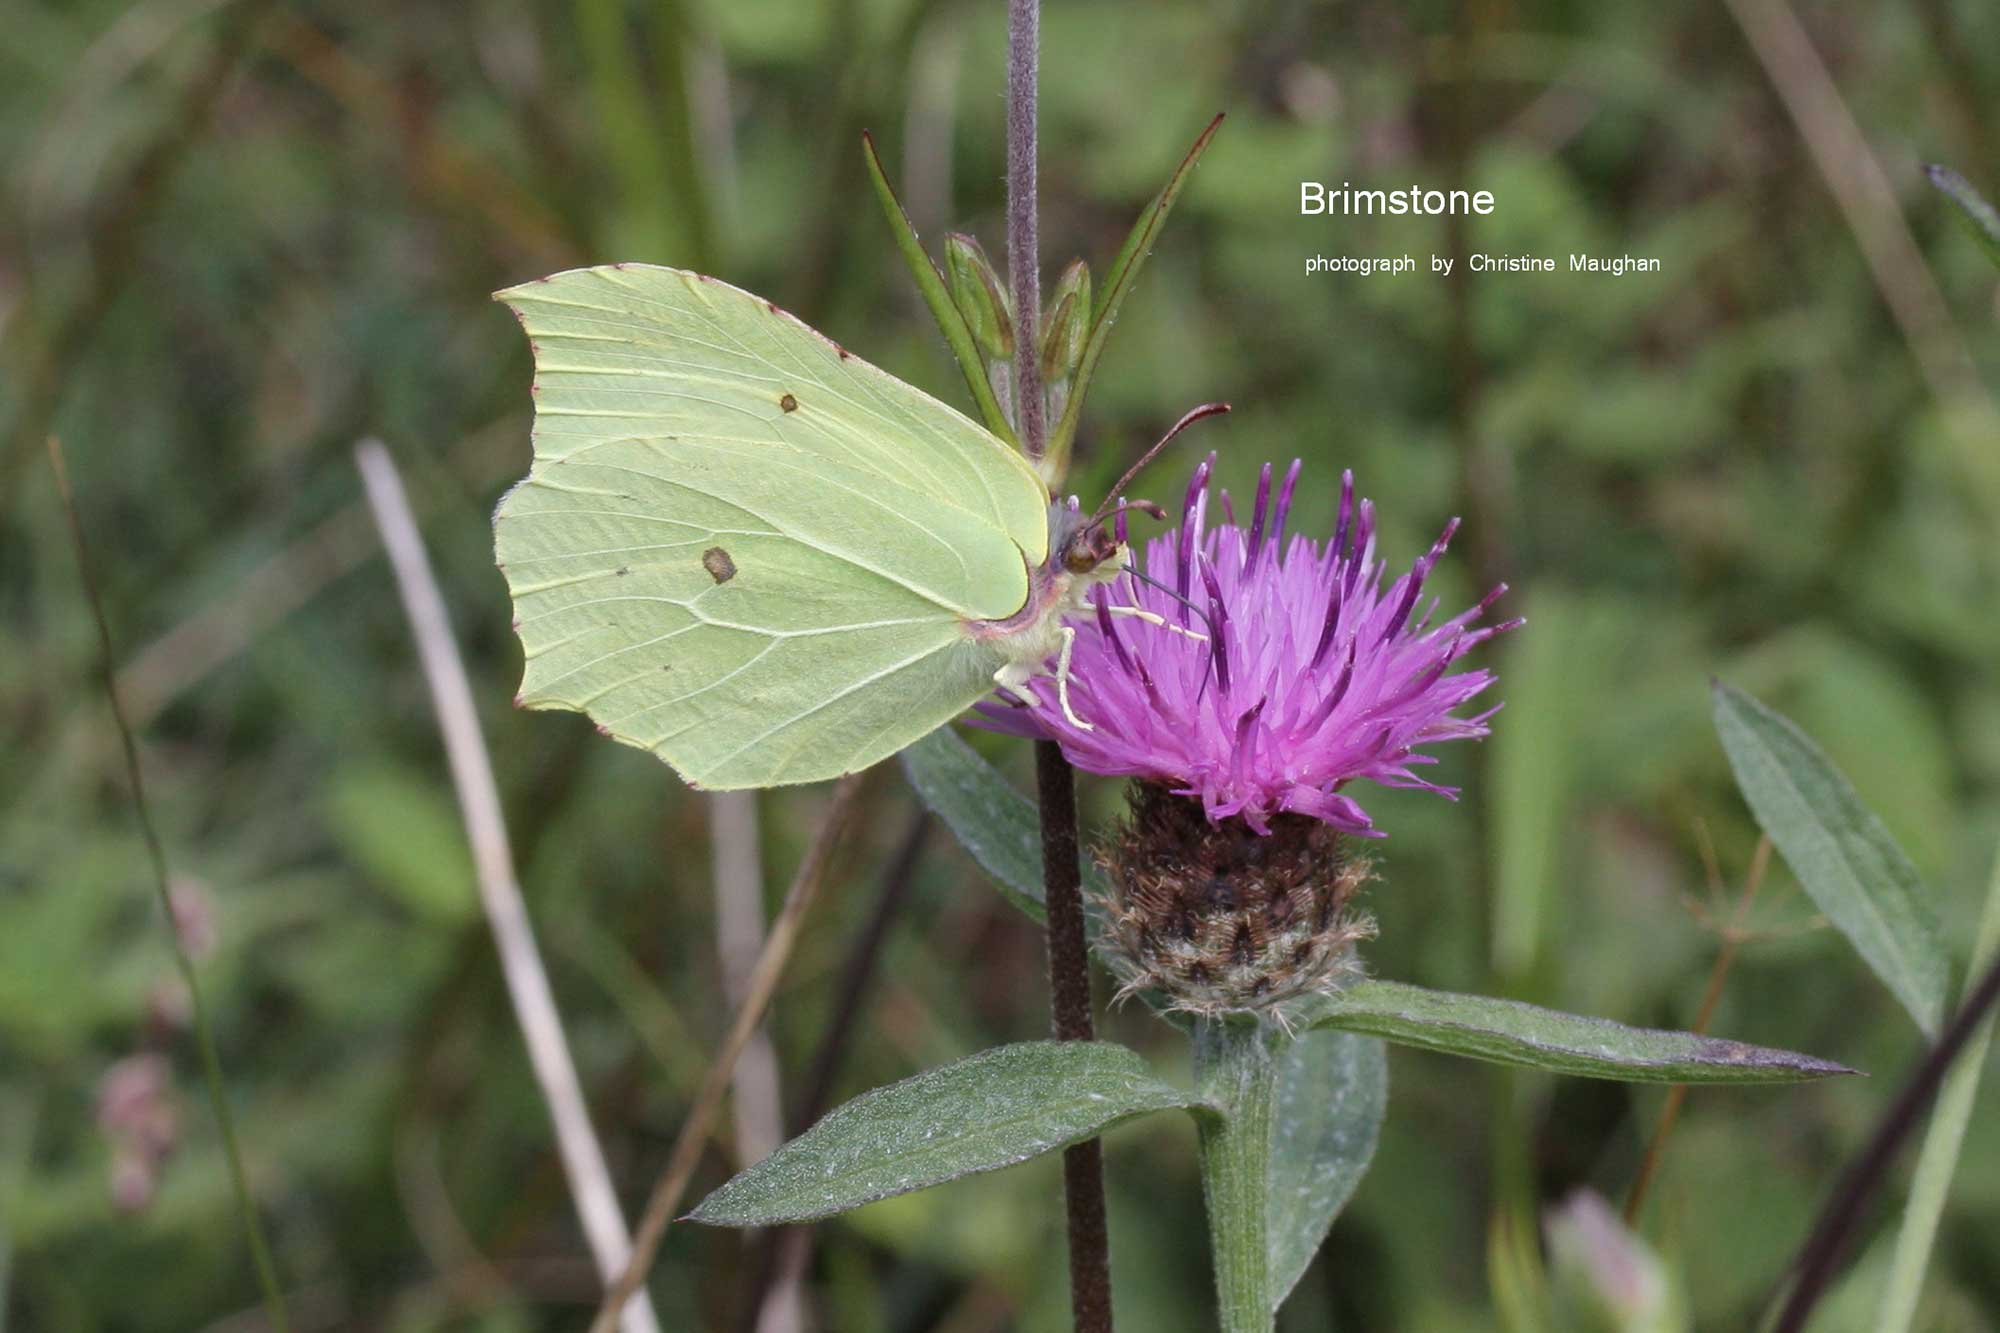 image of Brimstone butterfly